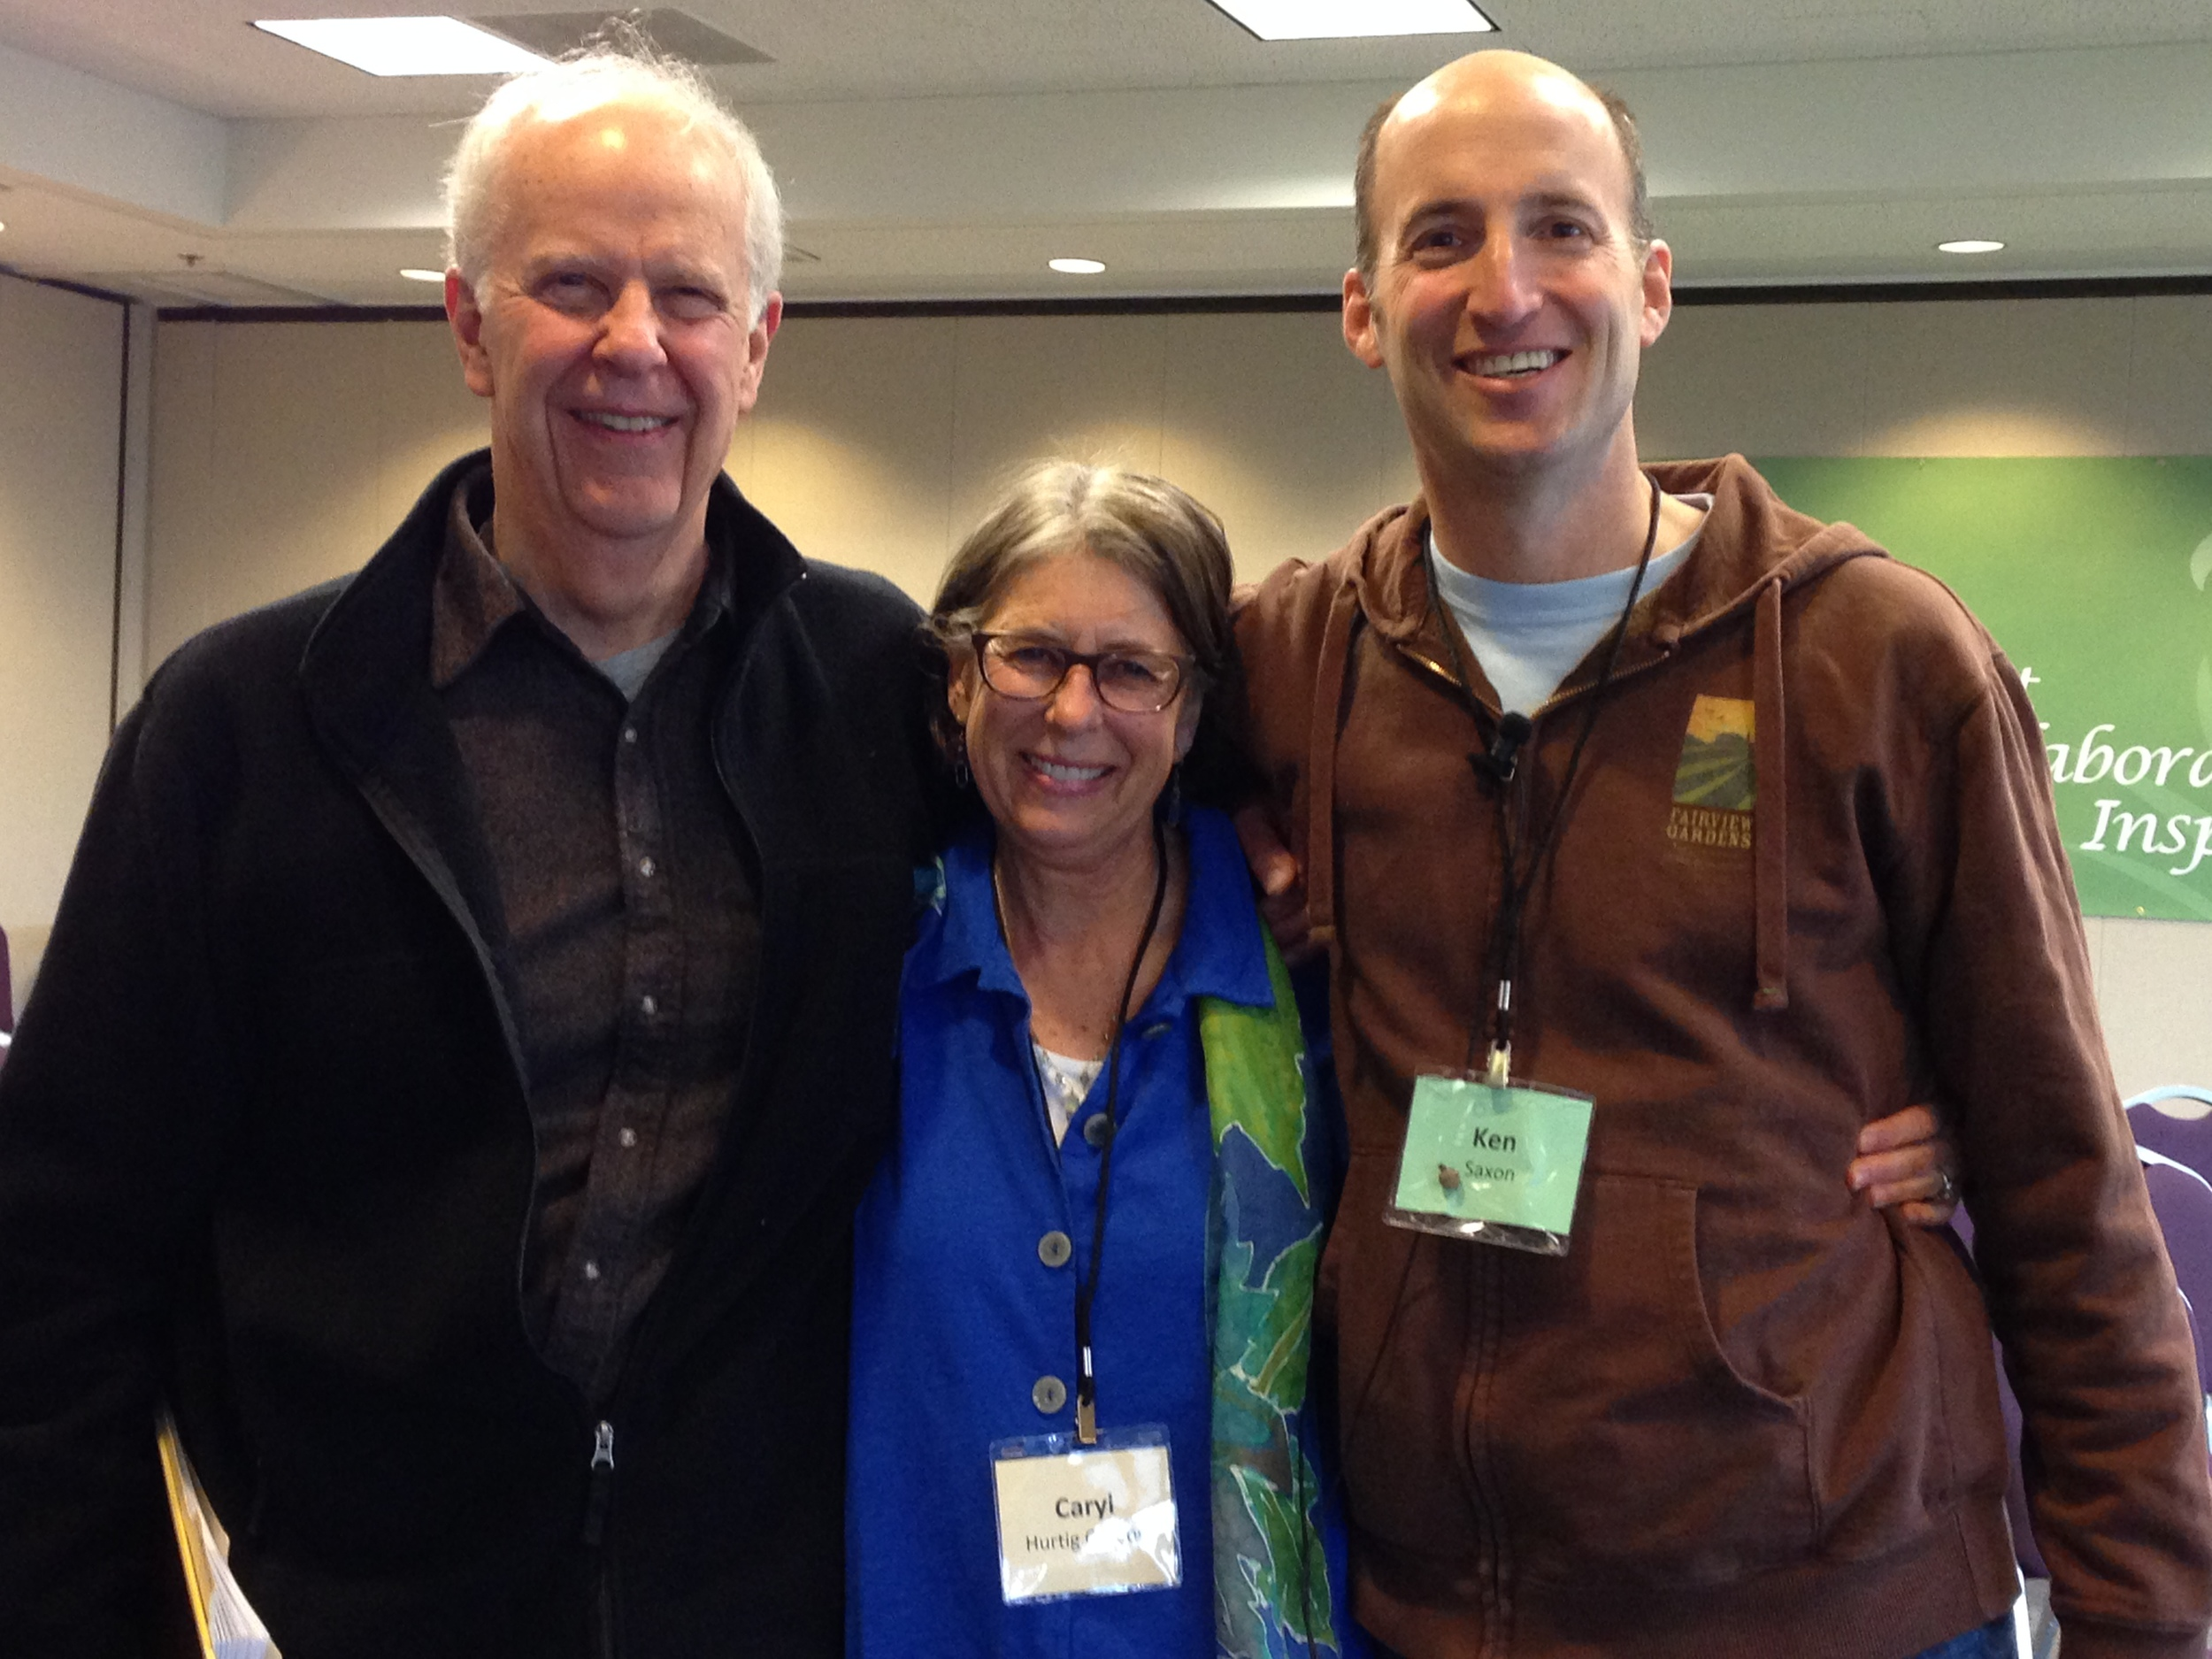 Caryl with Parker Palmer and Ken Saxon, co-modertors ofthe Global Gathering for Courage & Renewal Facilitators, 2015